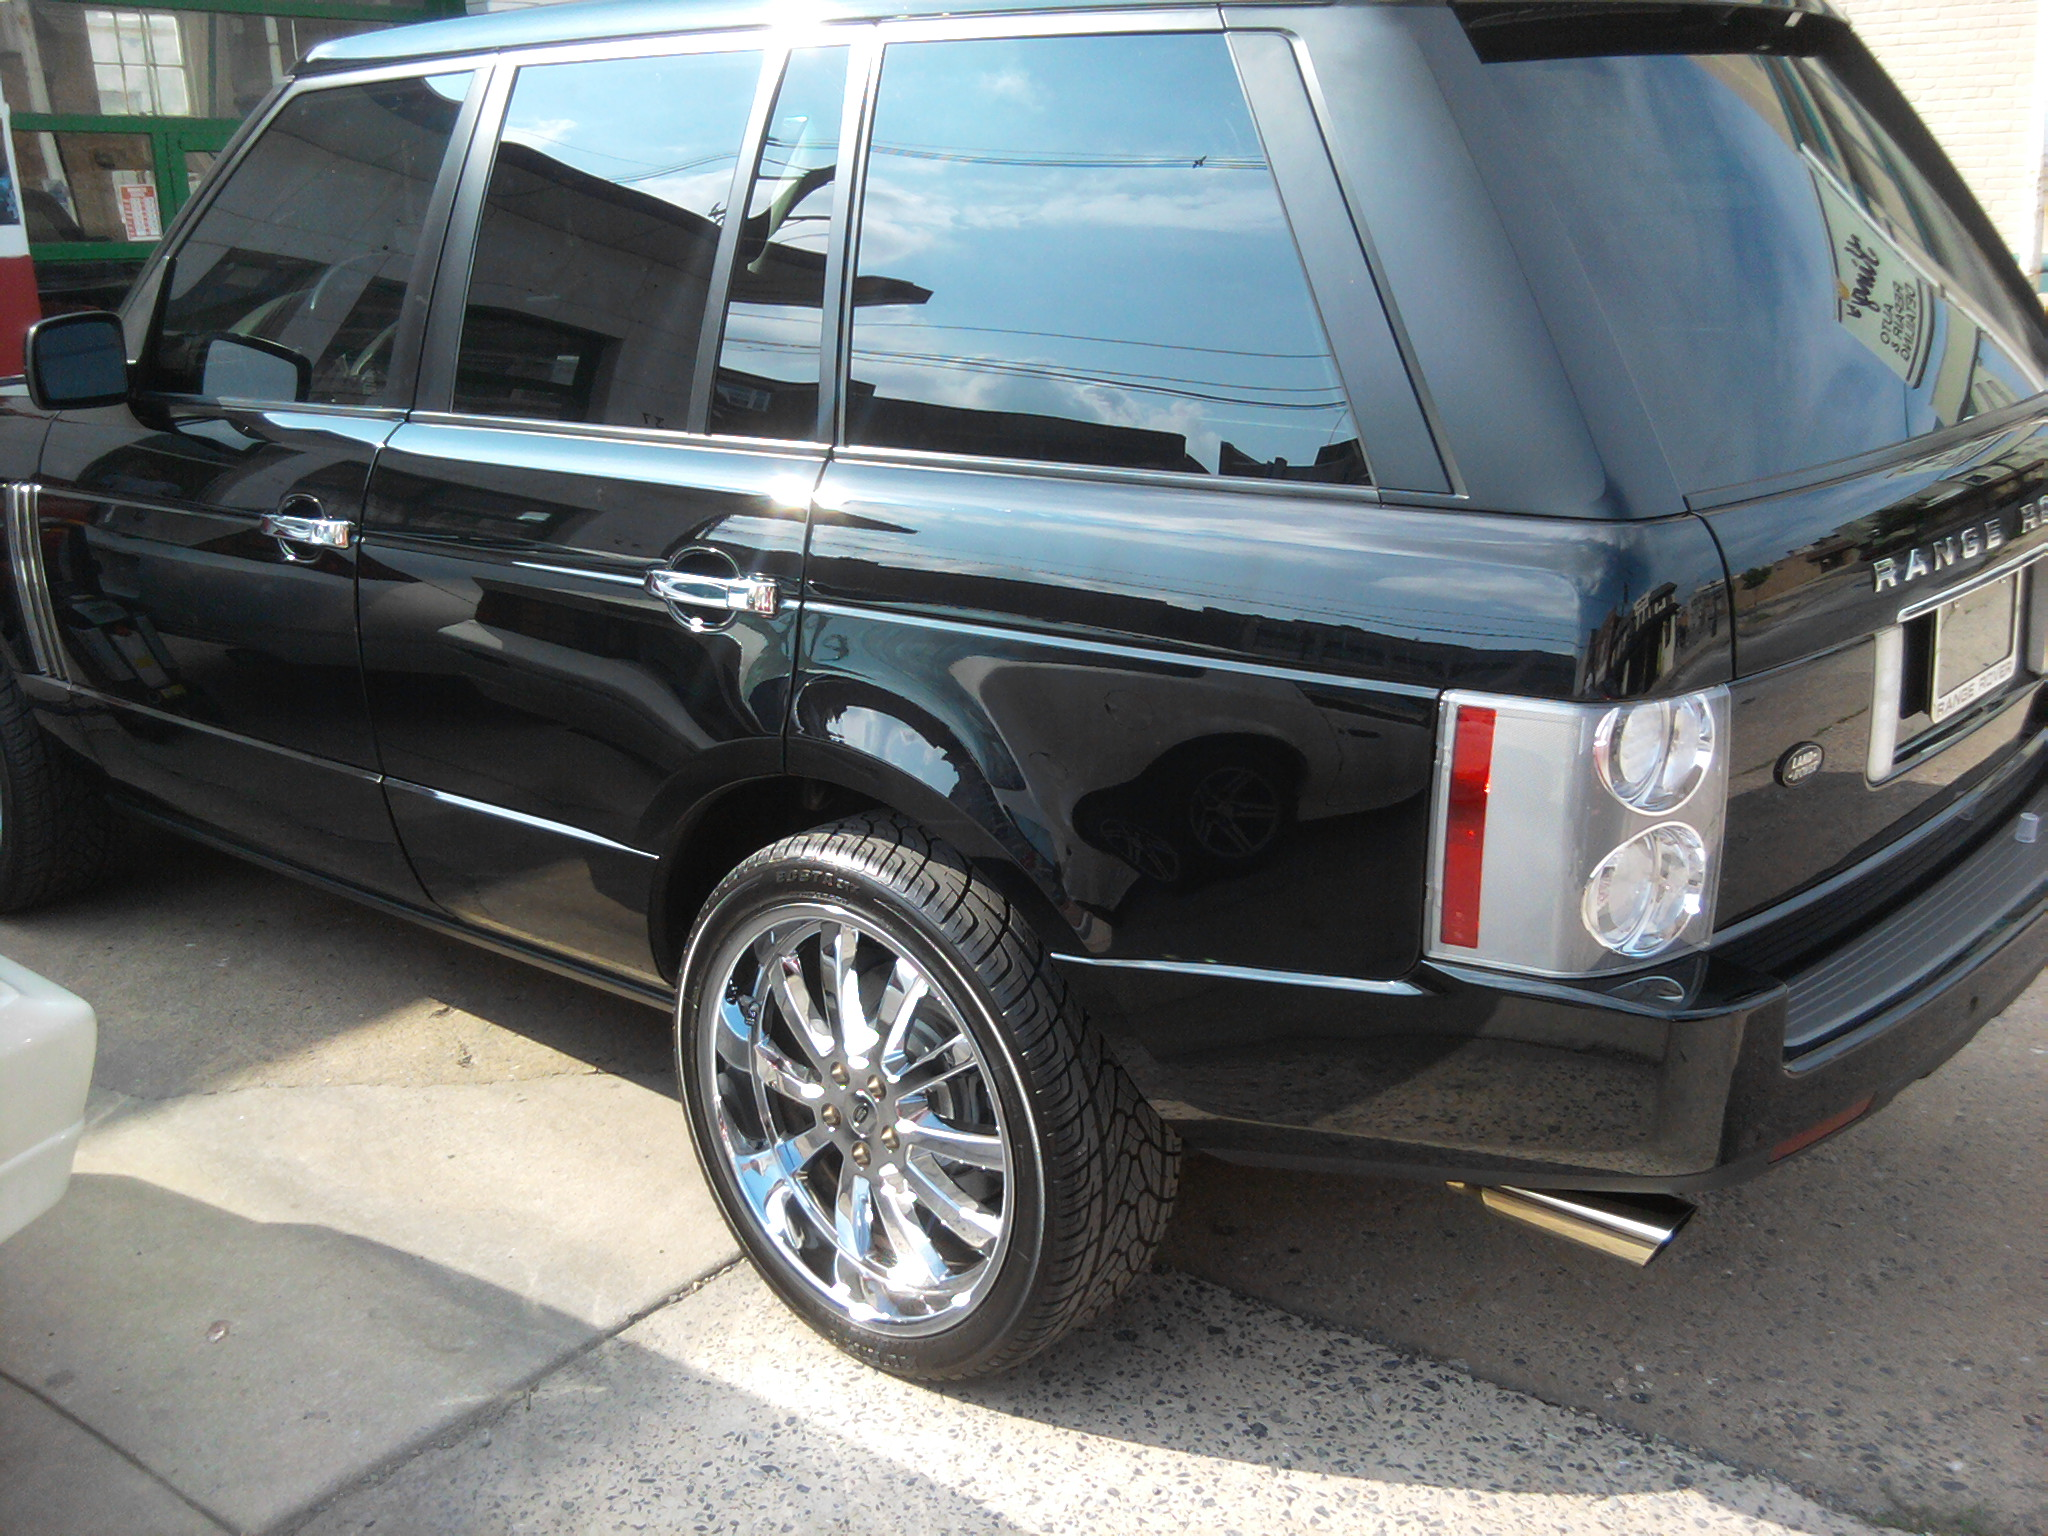 Range Rover Done By Antonio Details